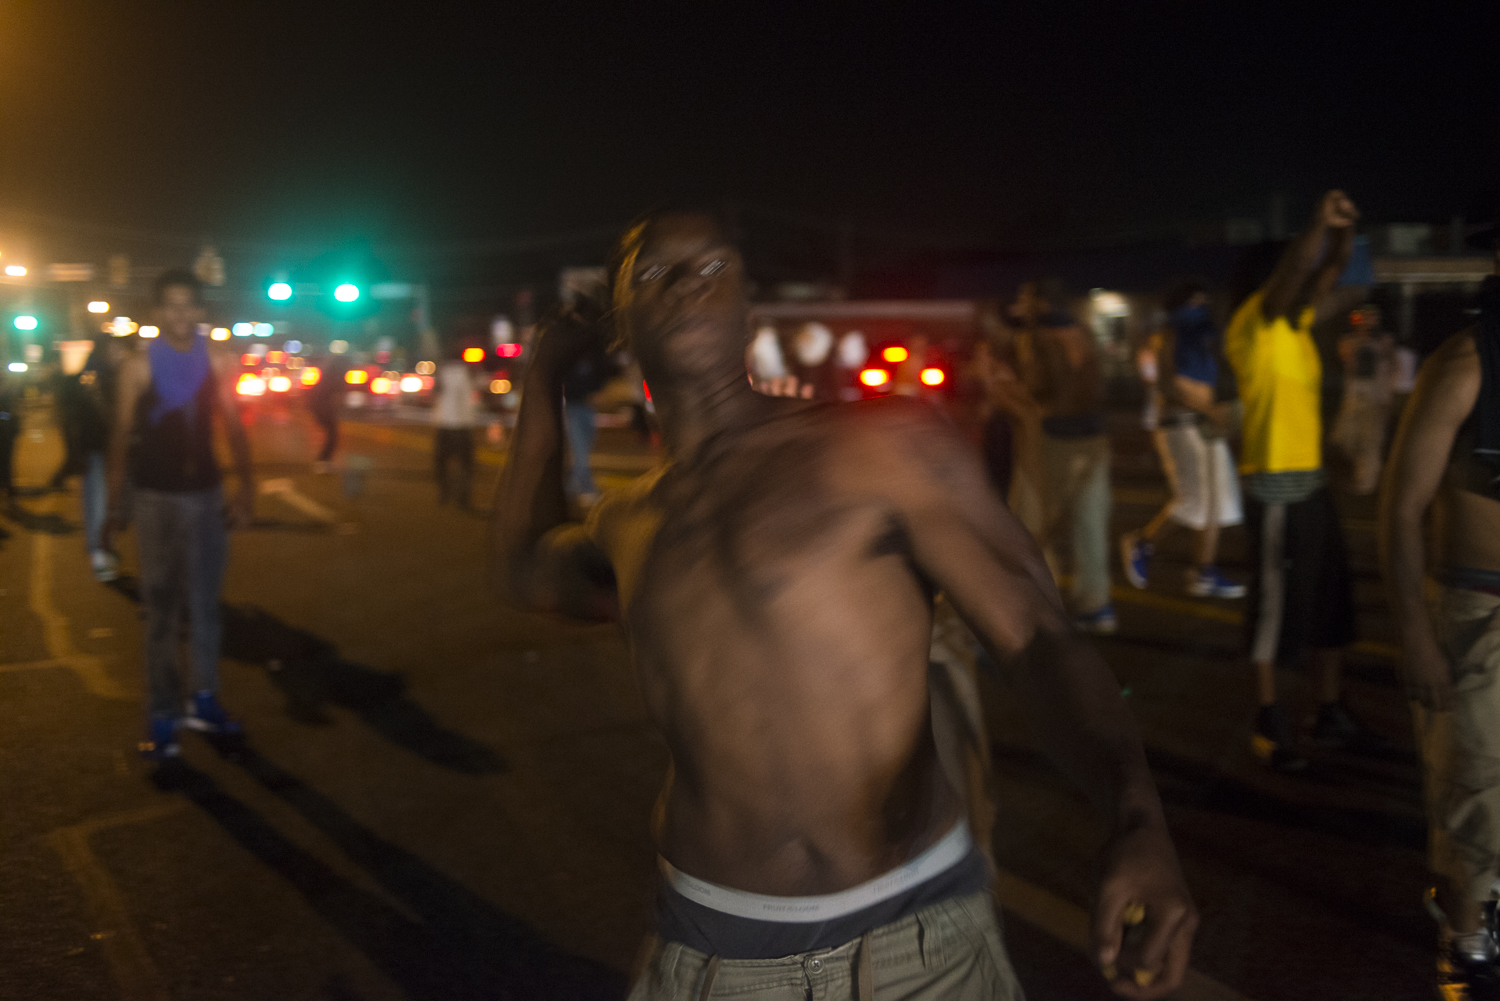 A protestor retaliates against police in Ferguson, Mo. on Aug. 17, 2014.